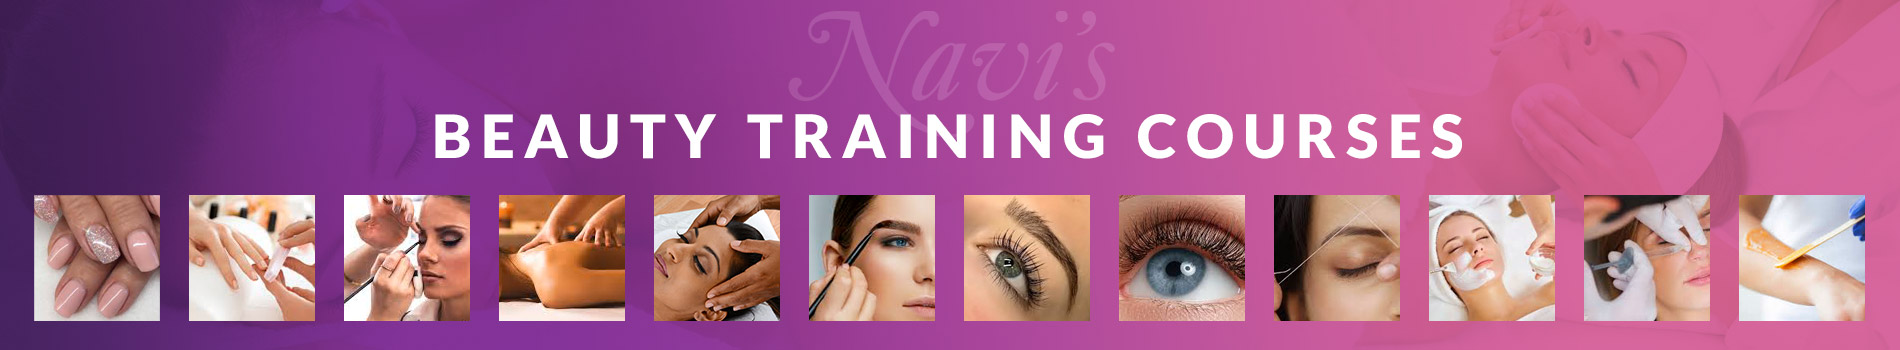 Beauty Training Courses Header